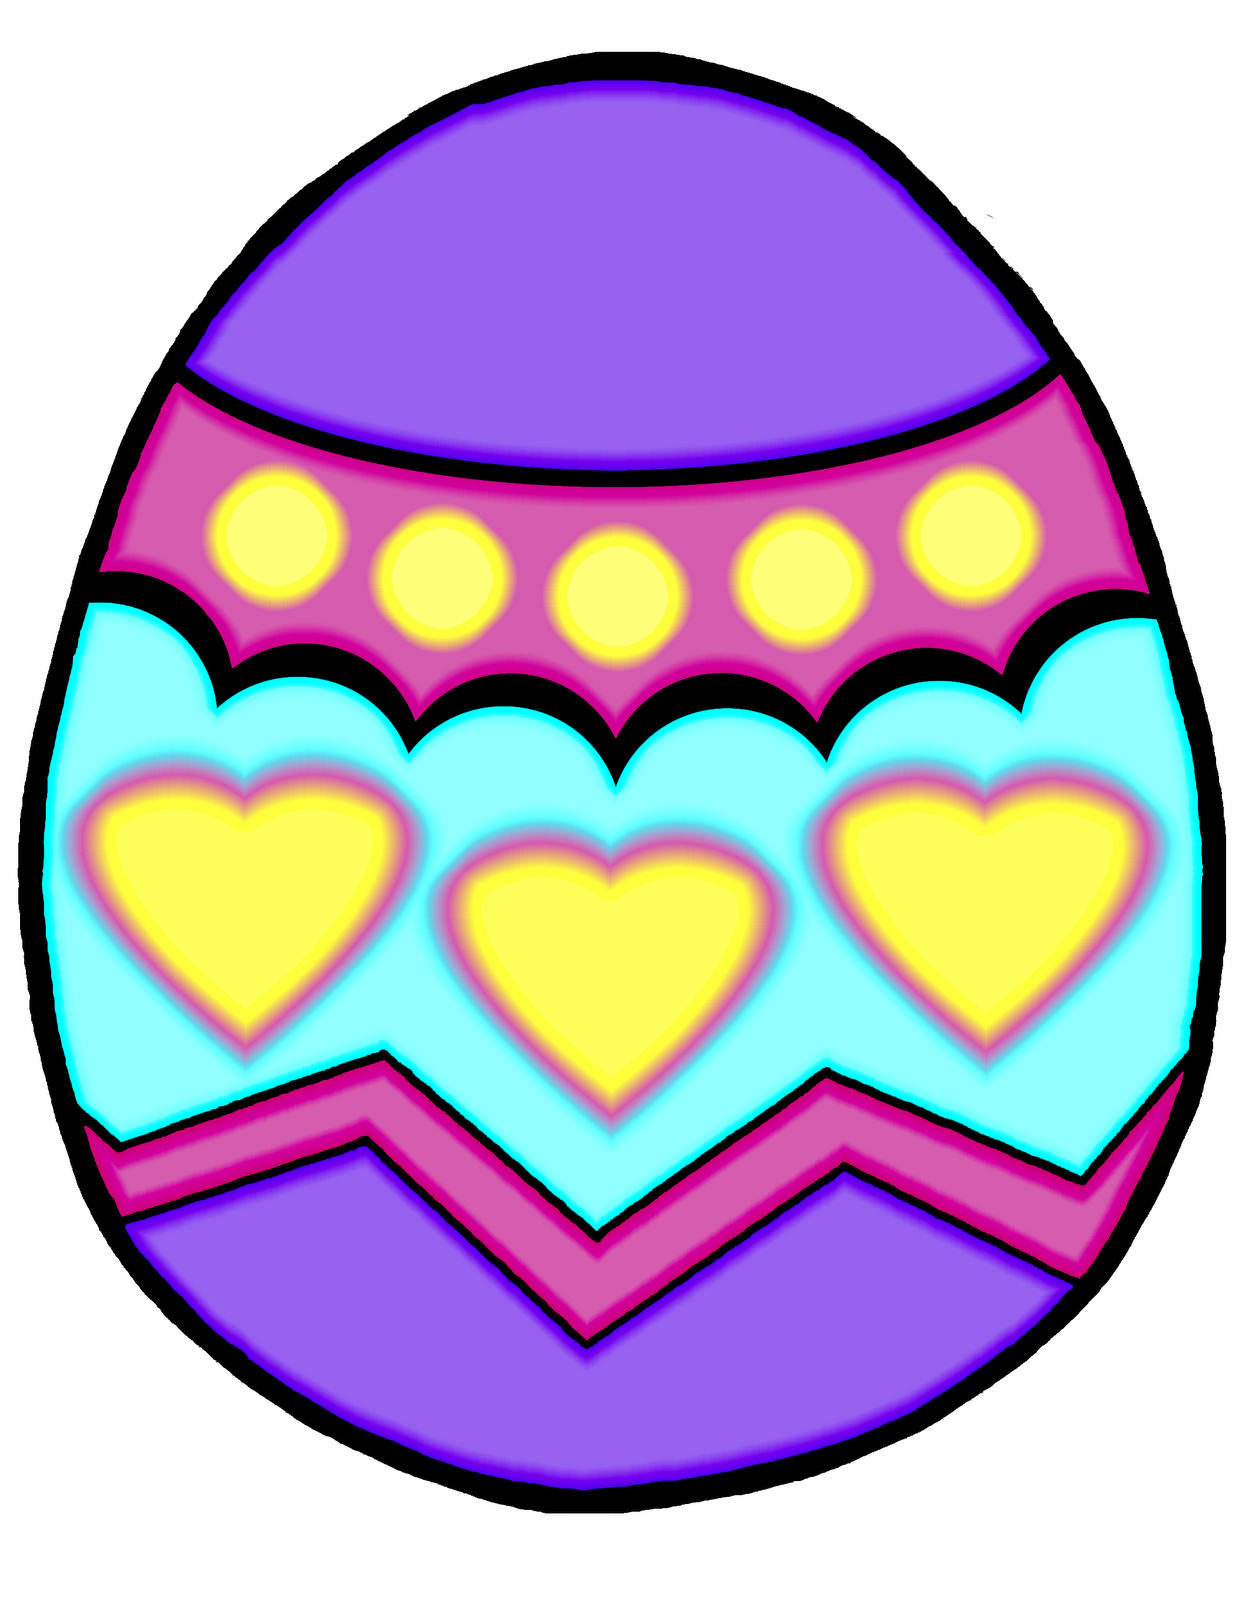 1252x1600 Free Easter Egg Clip Art Images Happy Easter Amp Thanksgiving 2018